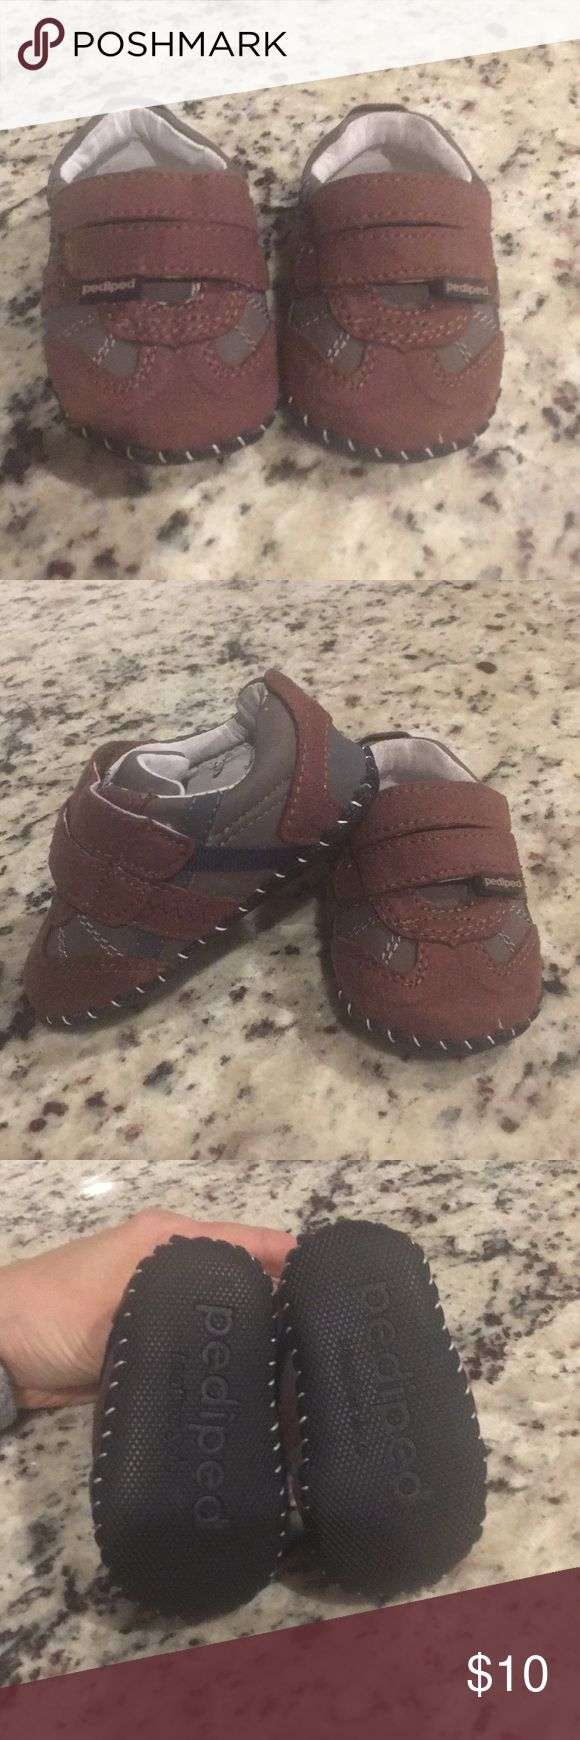 Pediped Infant Shoes Dark brown. Size 4-4.5. 6-12mo. Barely worn! pediped Shoes Baby & Walker